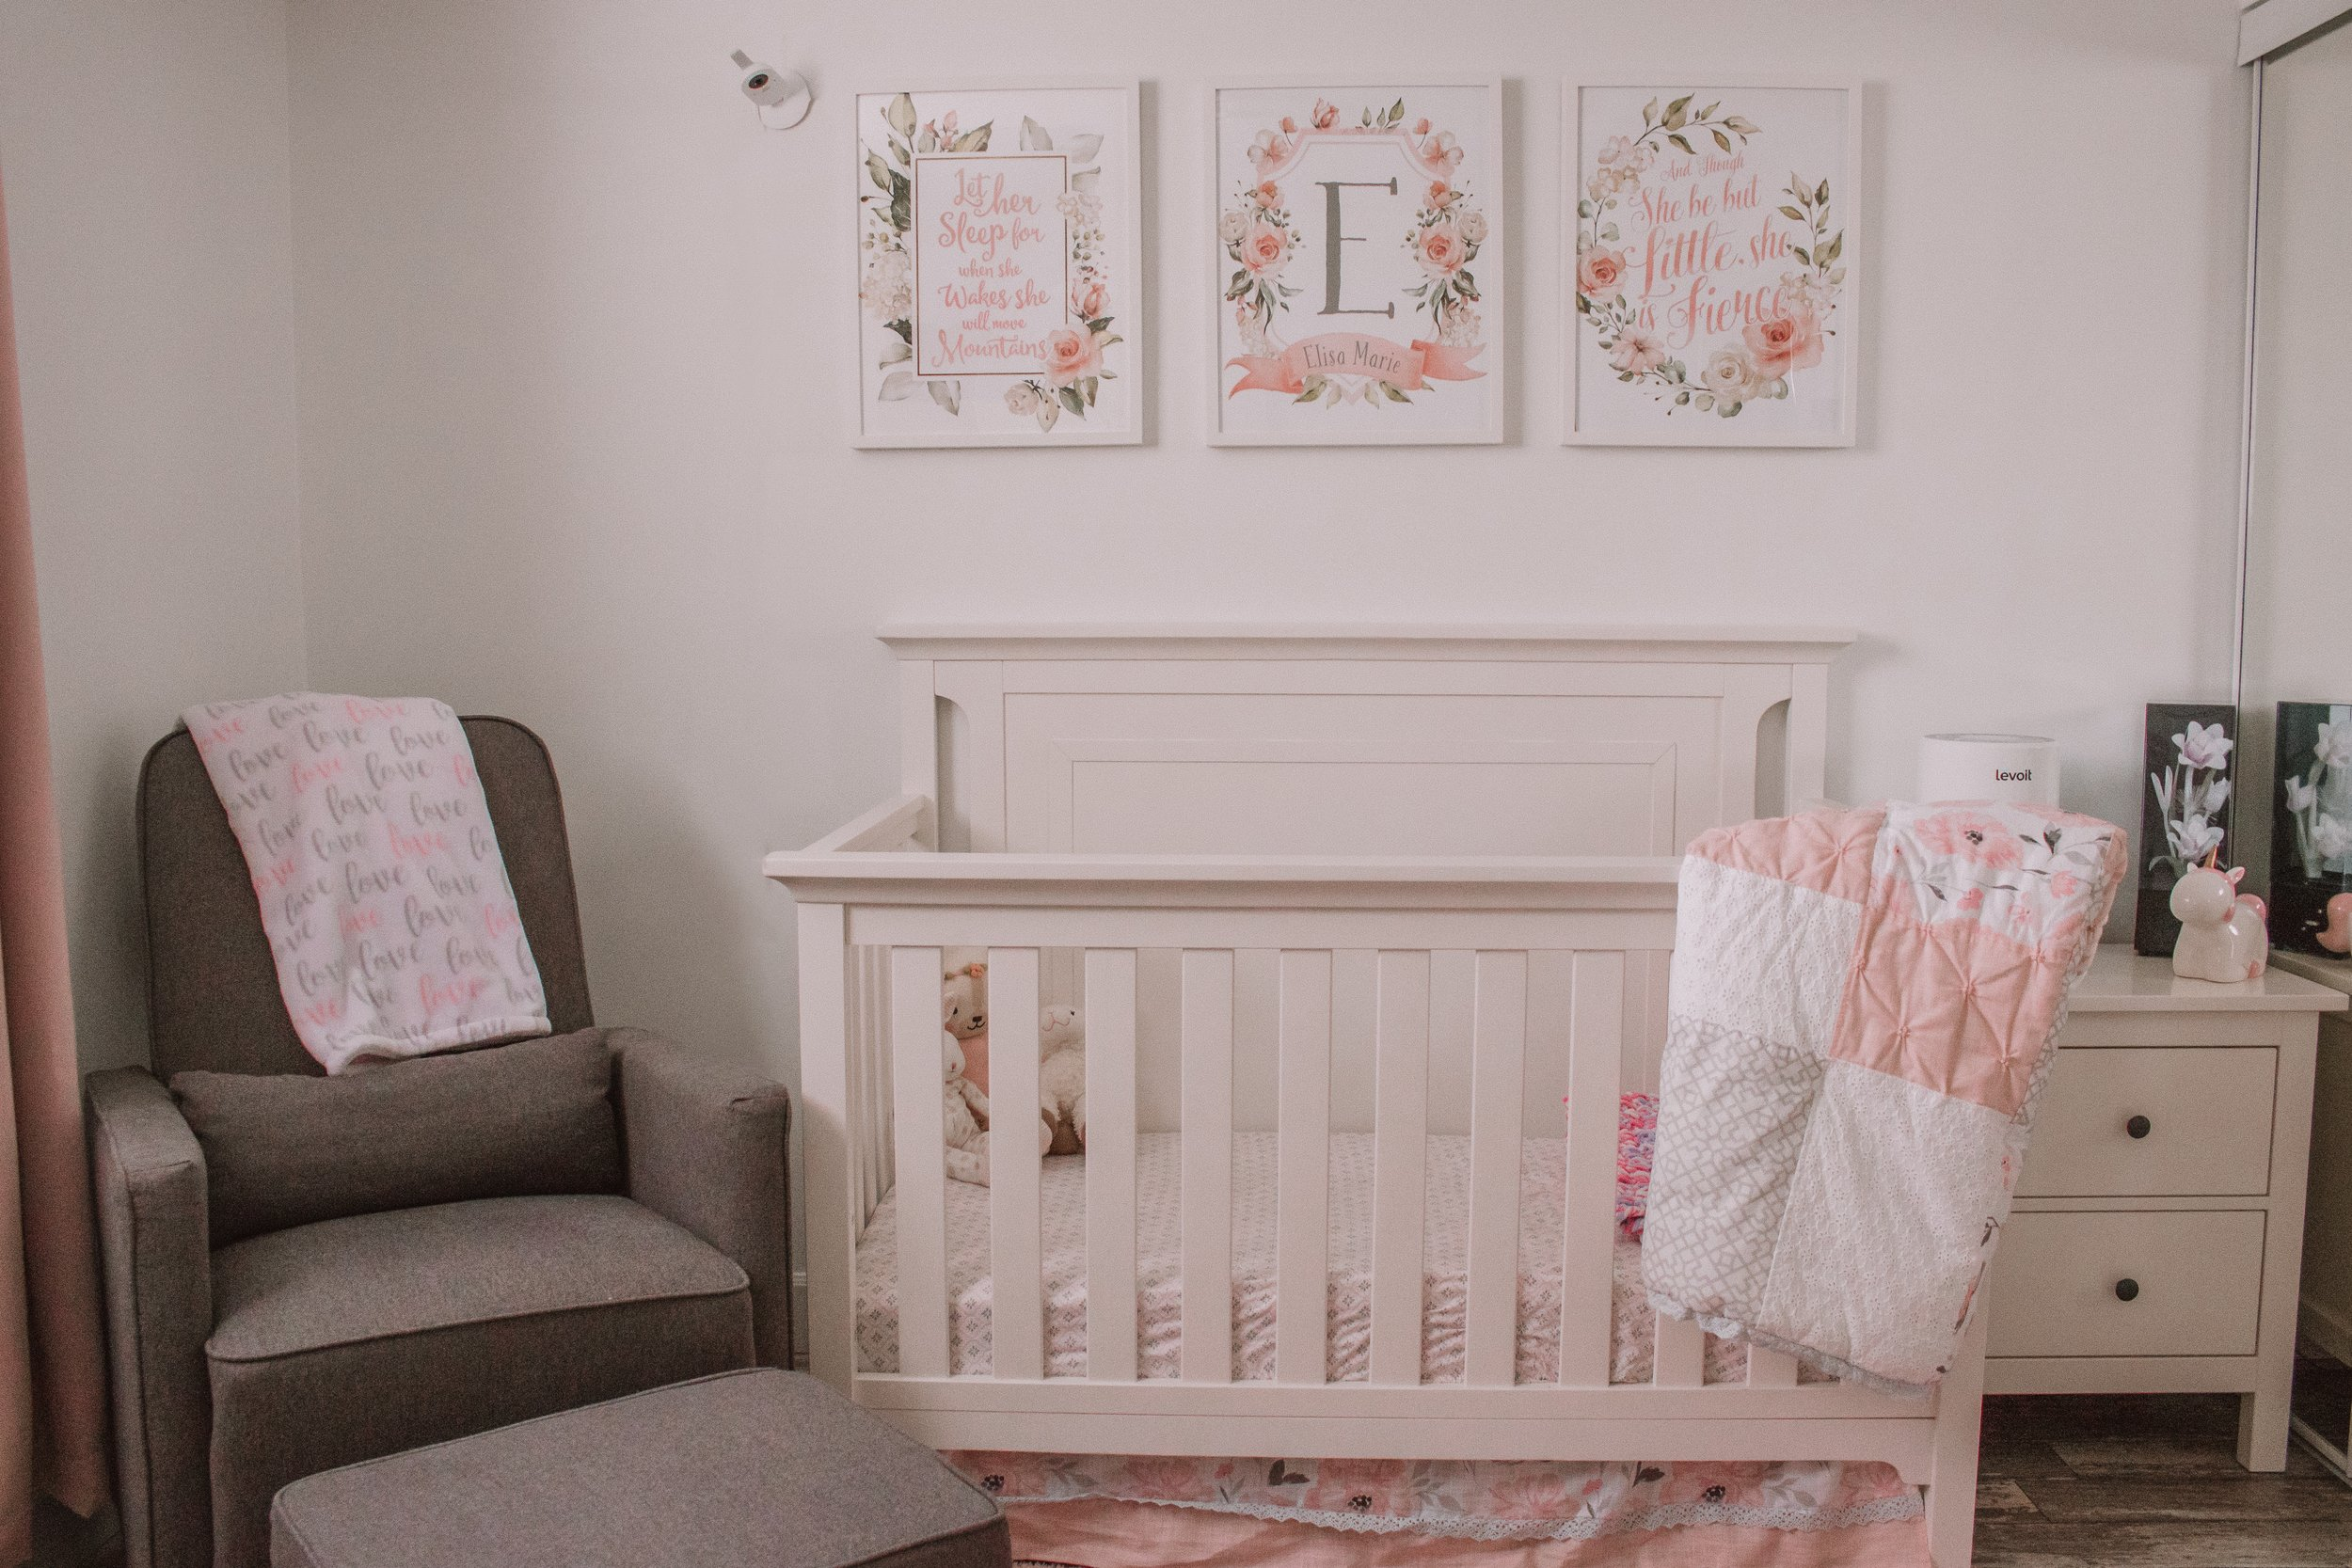 Since we live in a basement apartment, I kept the furniture and bedding light and bright. This helped make the space look and feel bigger.   Crib ,  Sheet Set ,  Bedding Set ,  Rocking Chair ,  Love Blanket ,  Photos above Crib